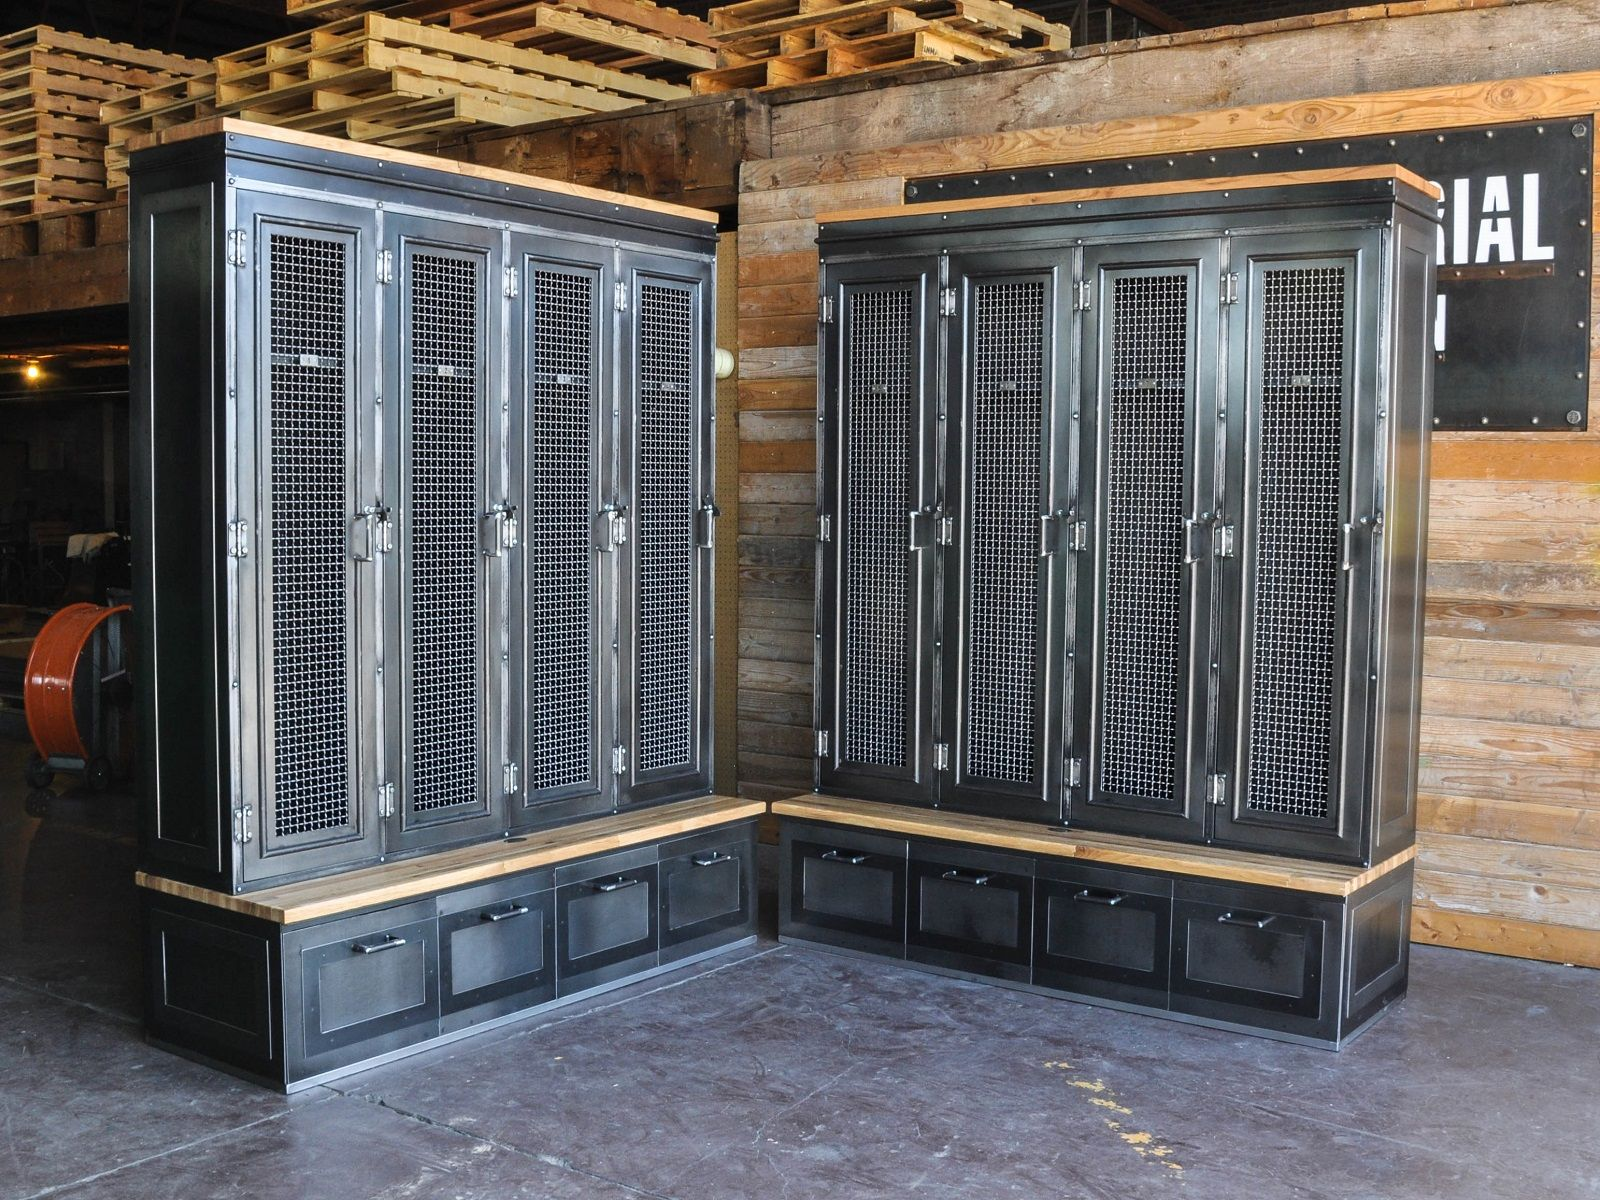 Custom Mudroom Lockers For An Entry With Our Vintage Industrial Spin Mudroom Lockers Mudroom Entryway Vintage Industrial Locker